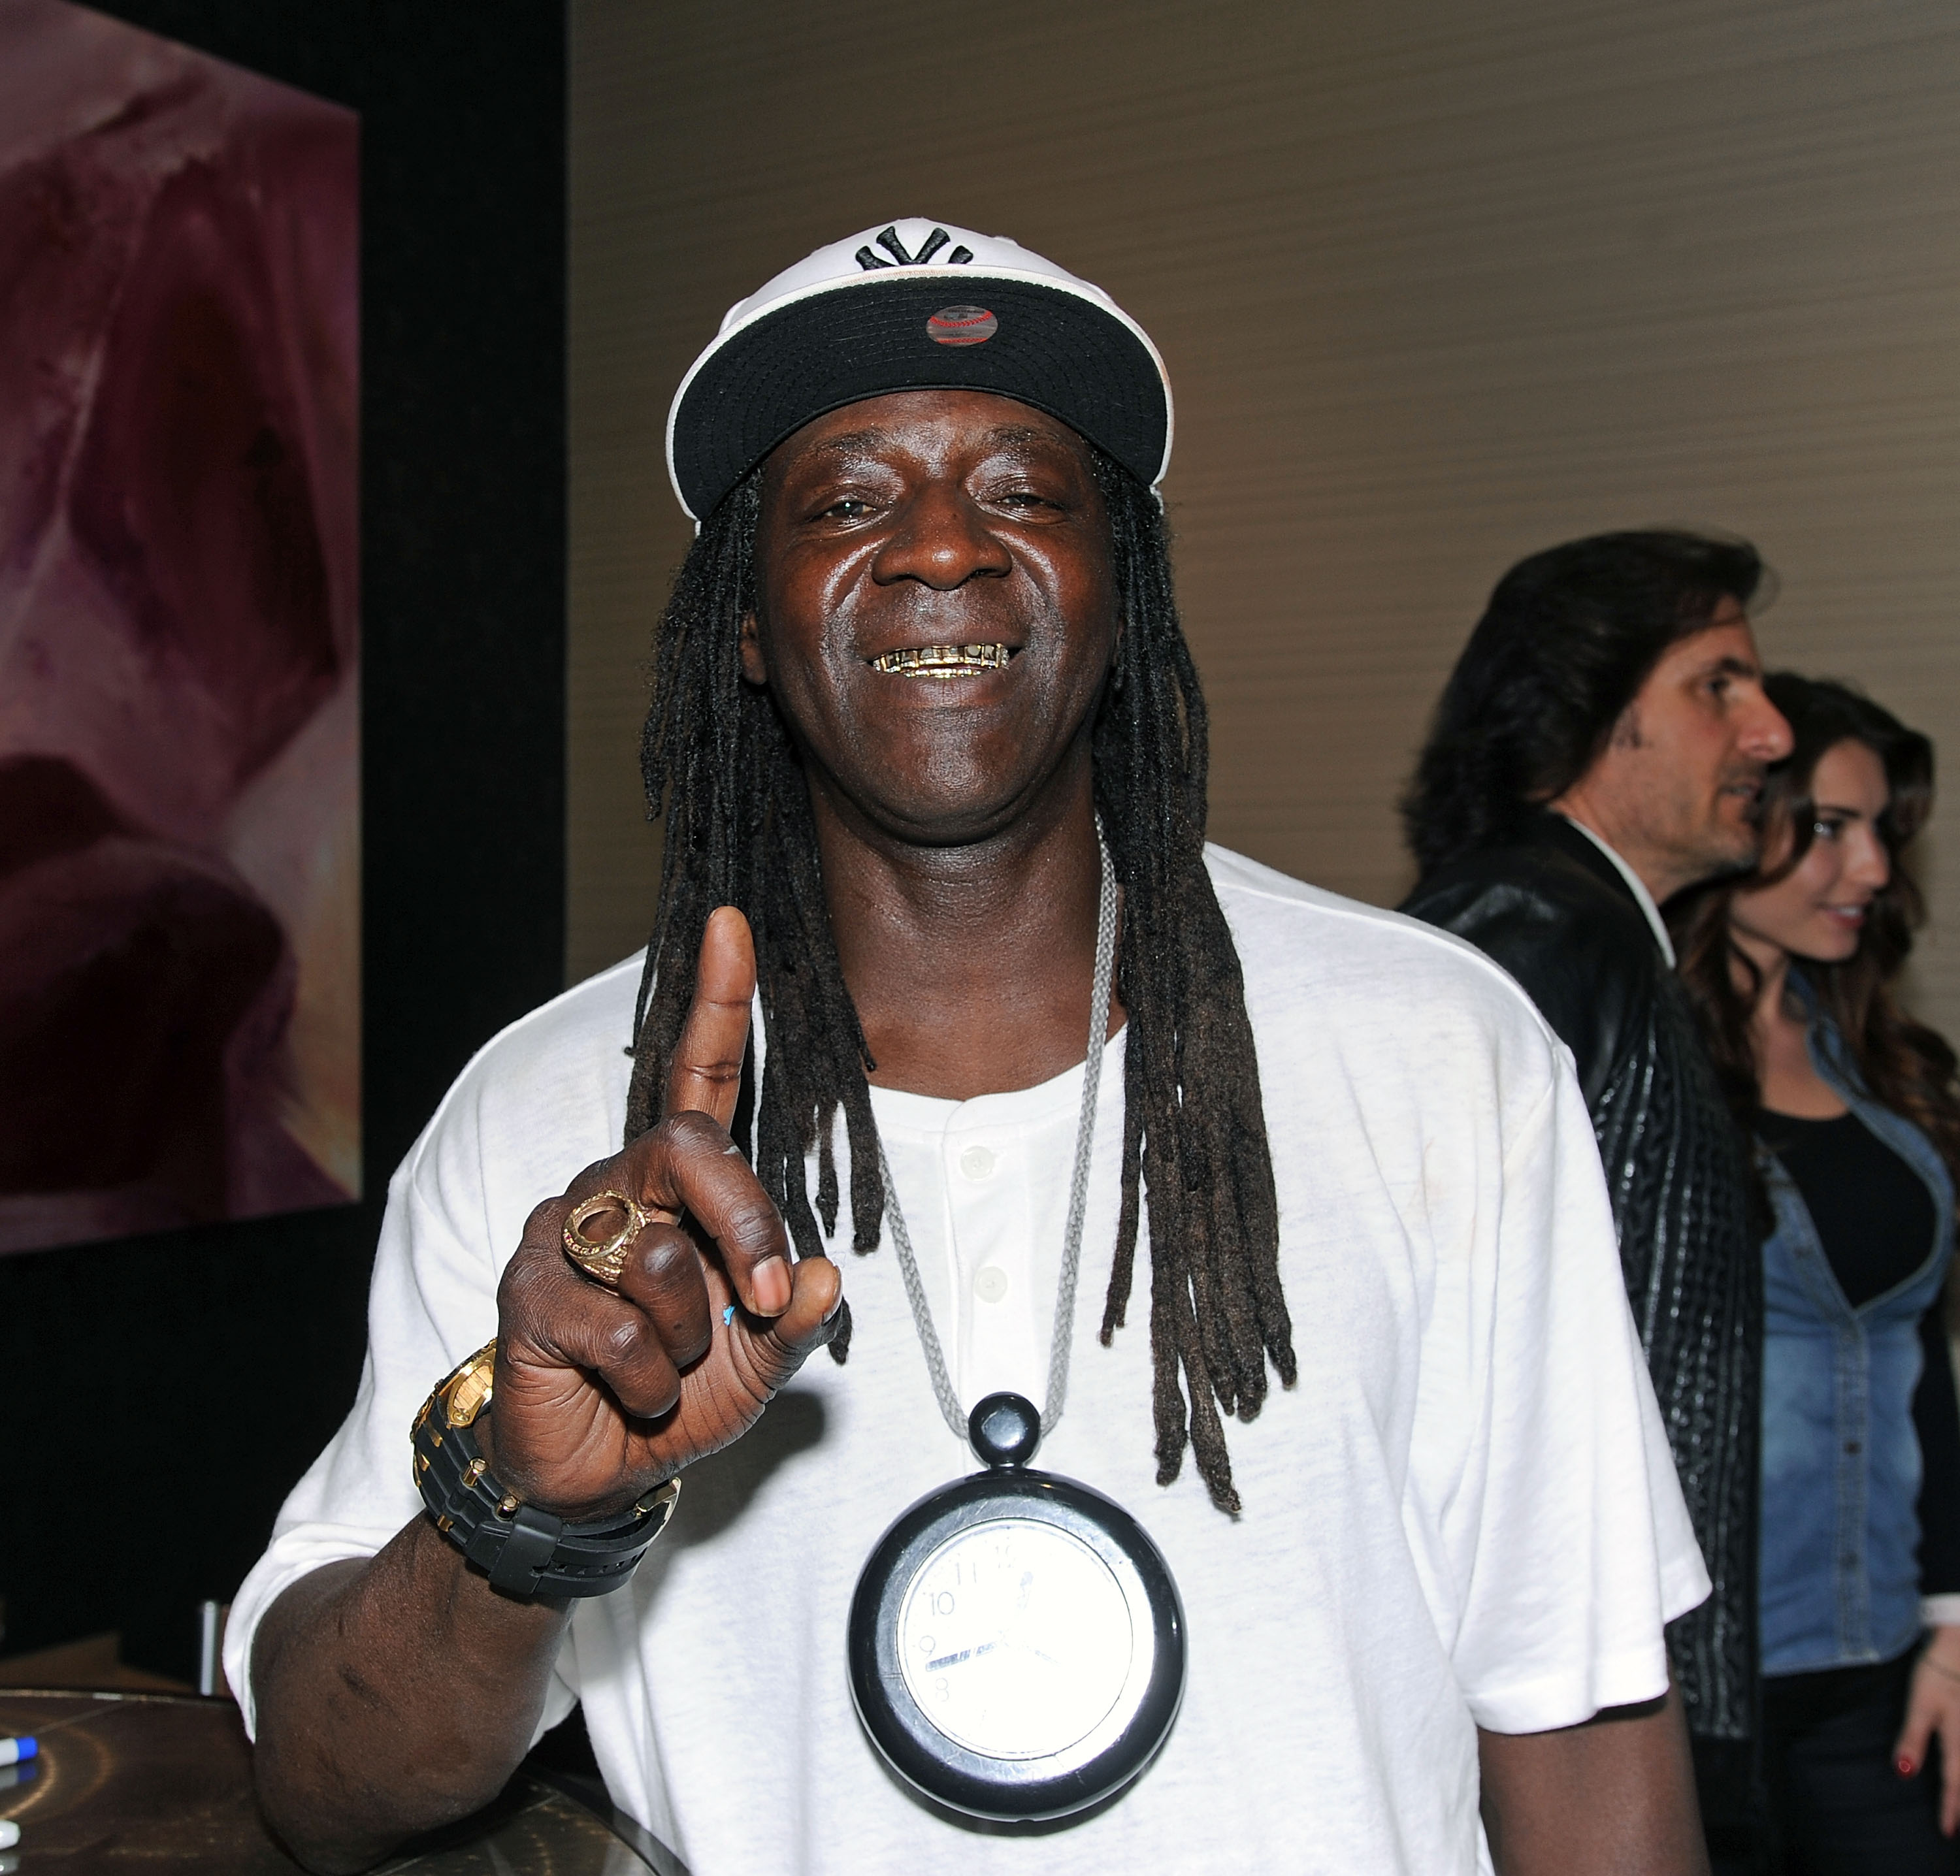 Flavor Flav at the Chiller Theatre Expo in 2017. | Photo: Getty Images